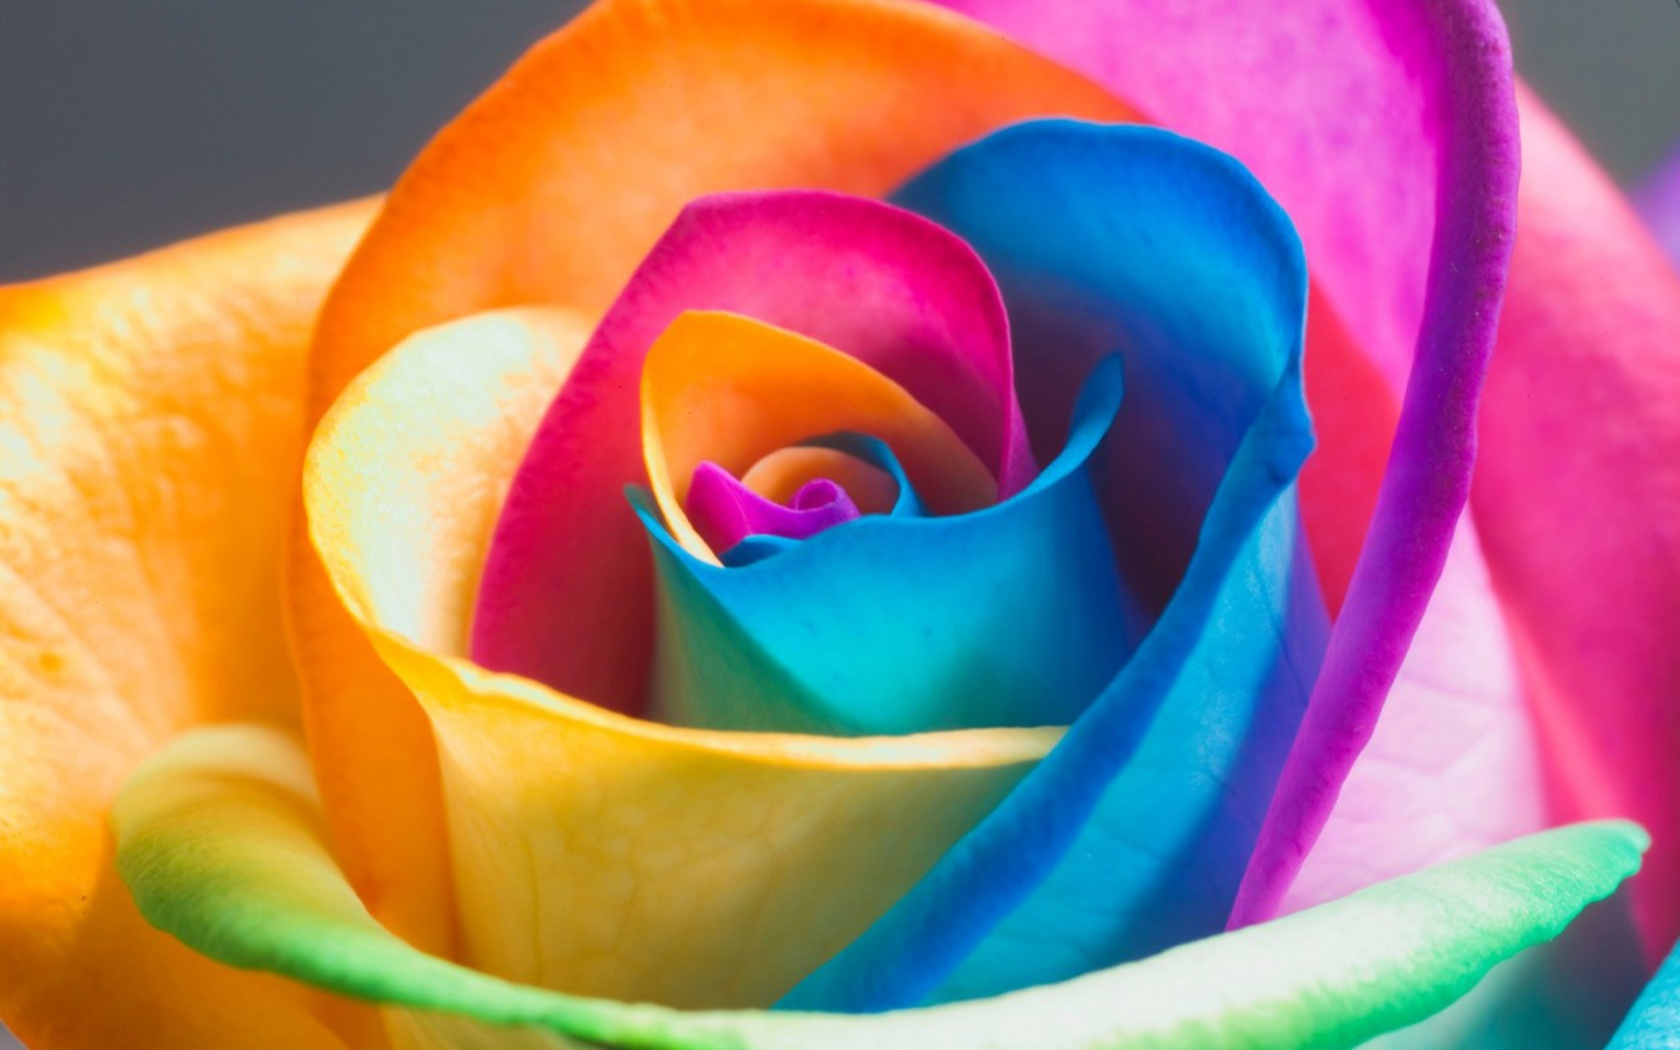 Hd wallpaper wap - Colorful Rose Beautiful Flower Hd Wallpaper